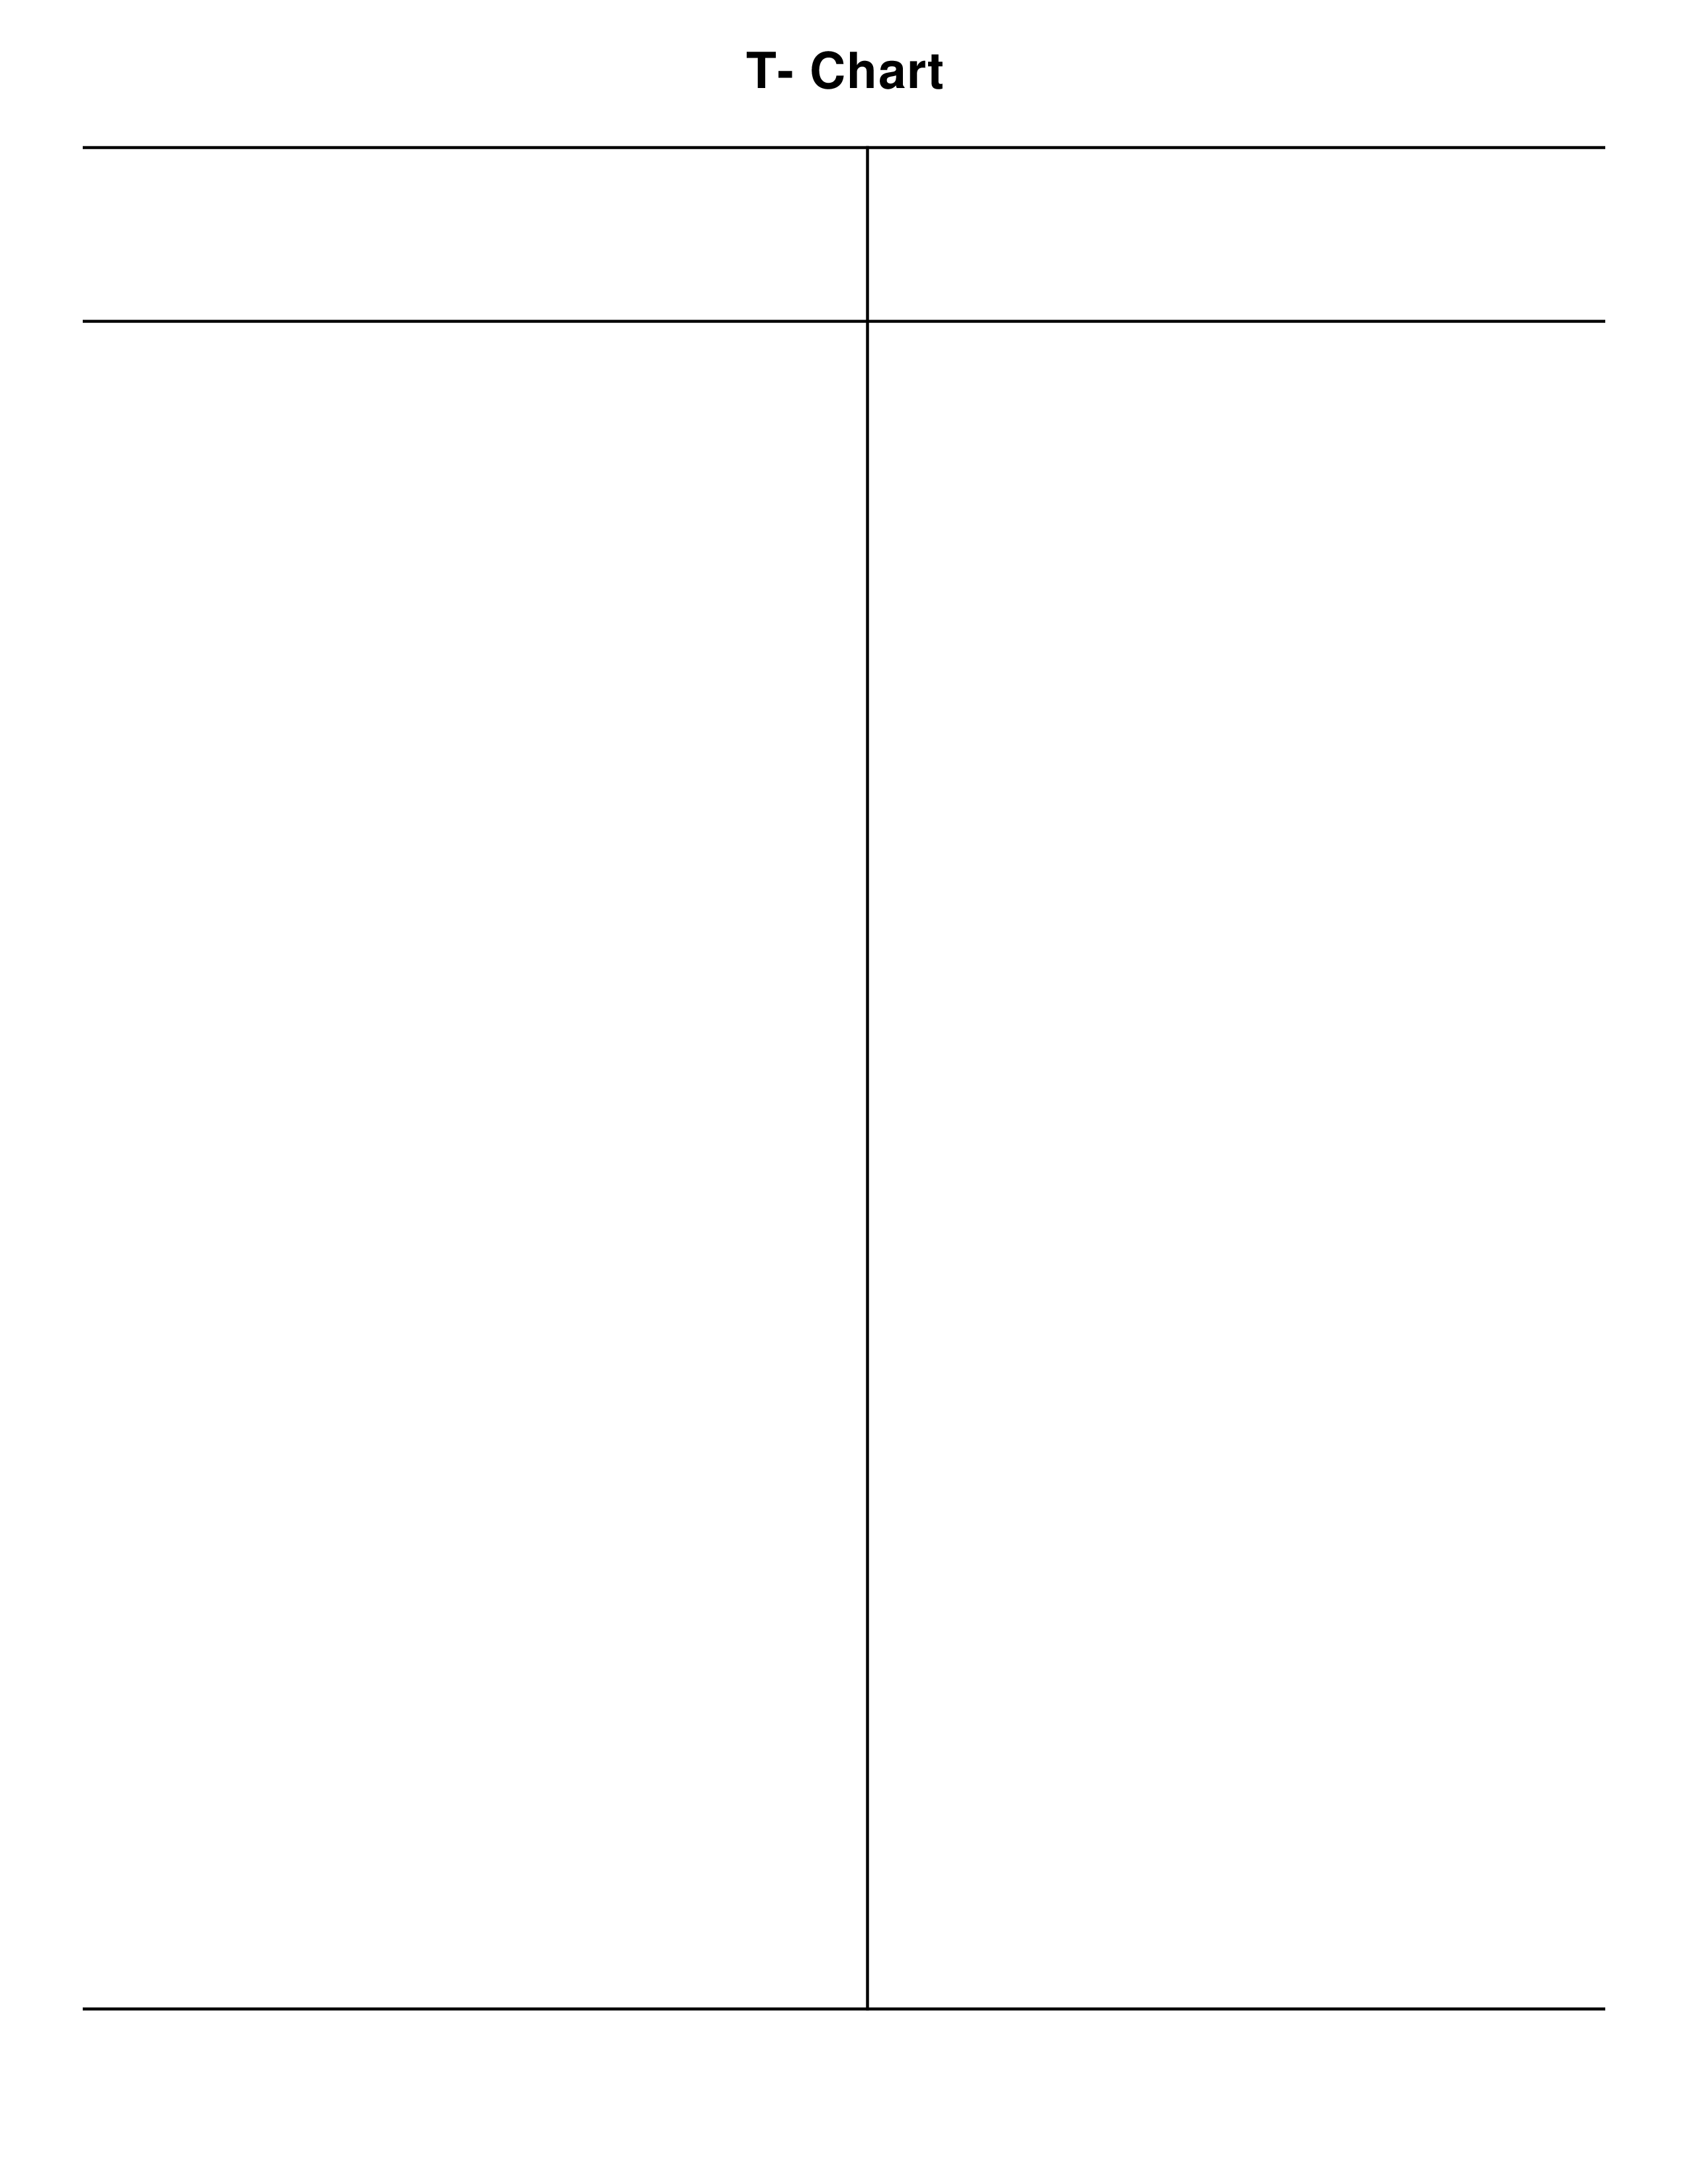 Free T Chart Template How To Create A T Chart Download This T Chart Template Now Templates Printable Chart Powerpoint Chart Templates